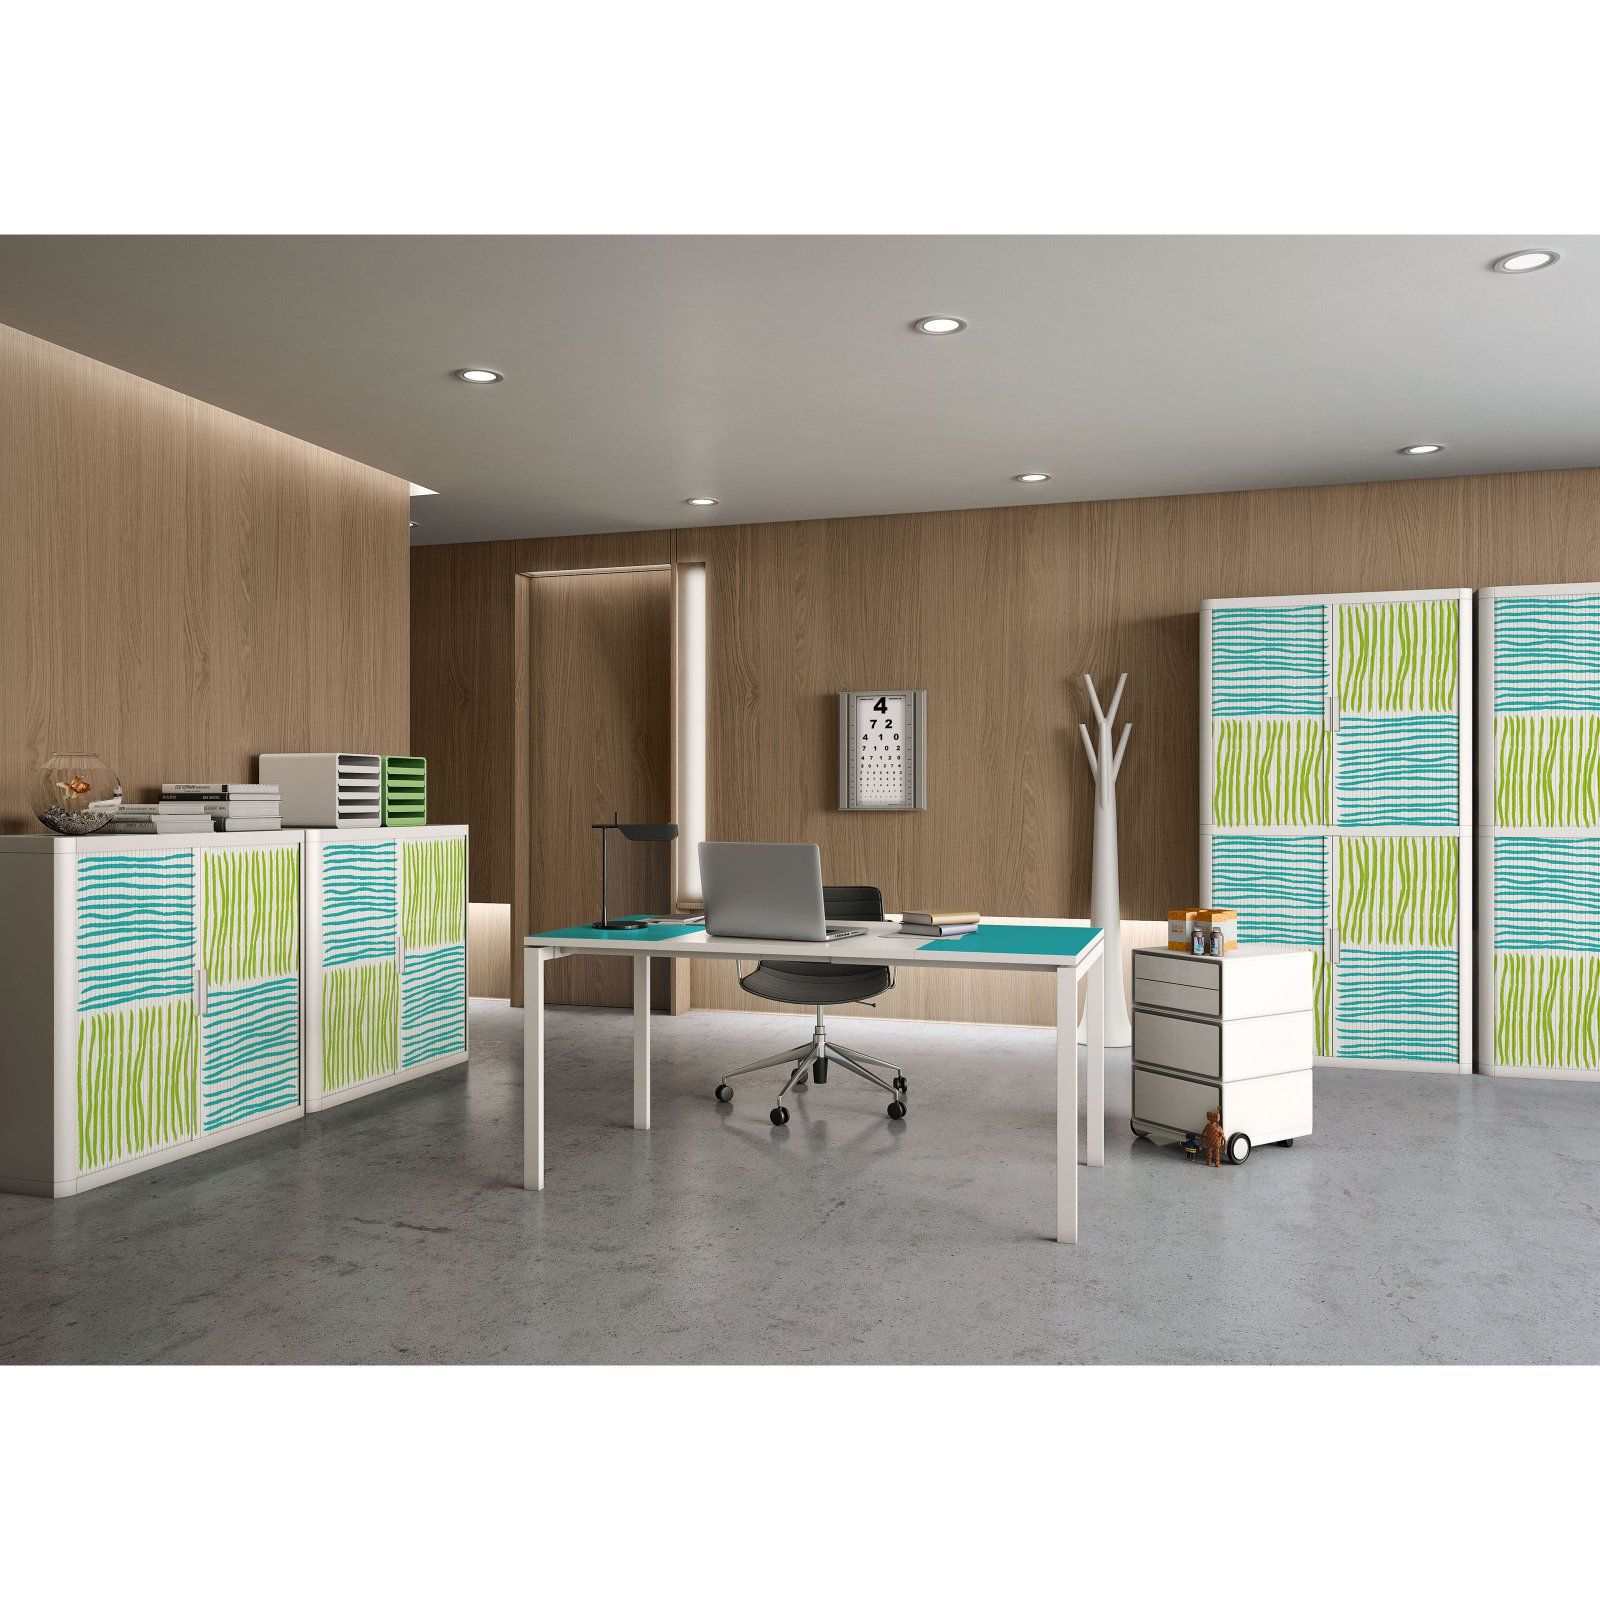 "Paperflow easyOffice Storage Cabinet, 41"" Tall with Two Shelves, Blue and Green Squares/Lines"